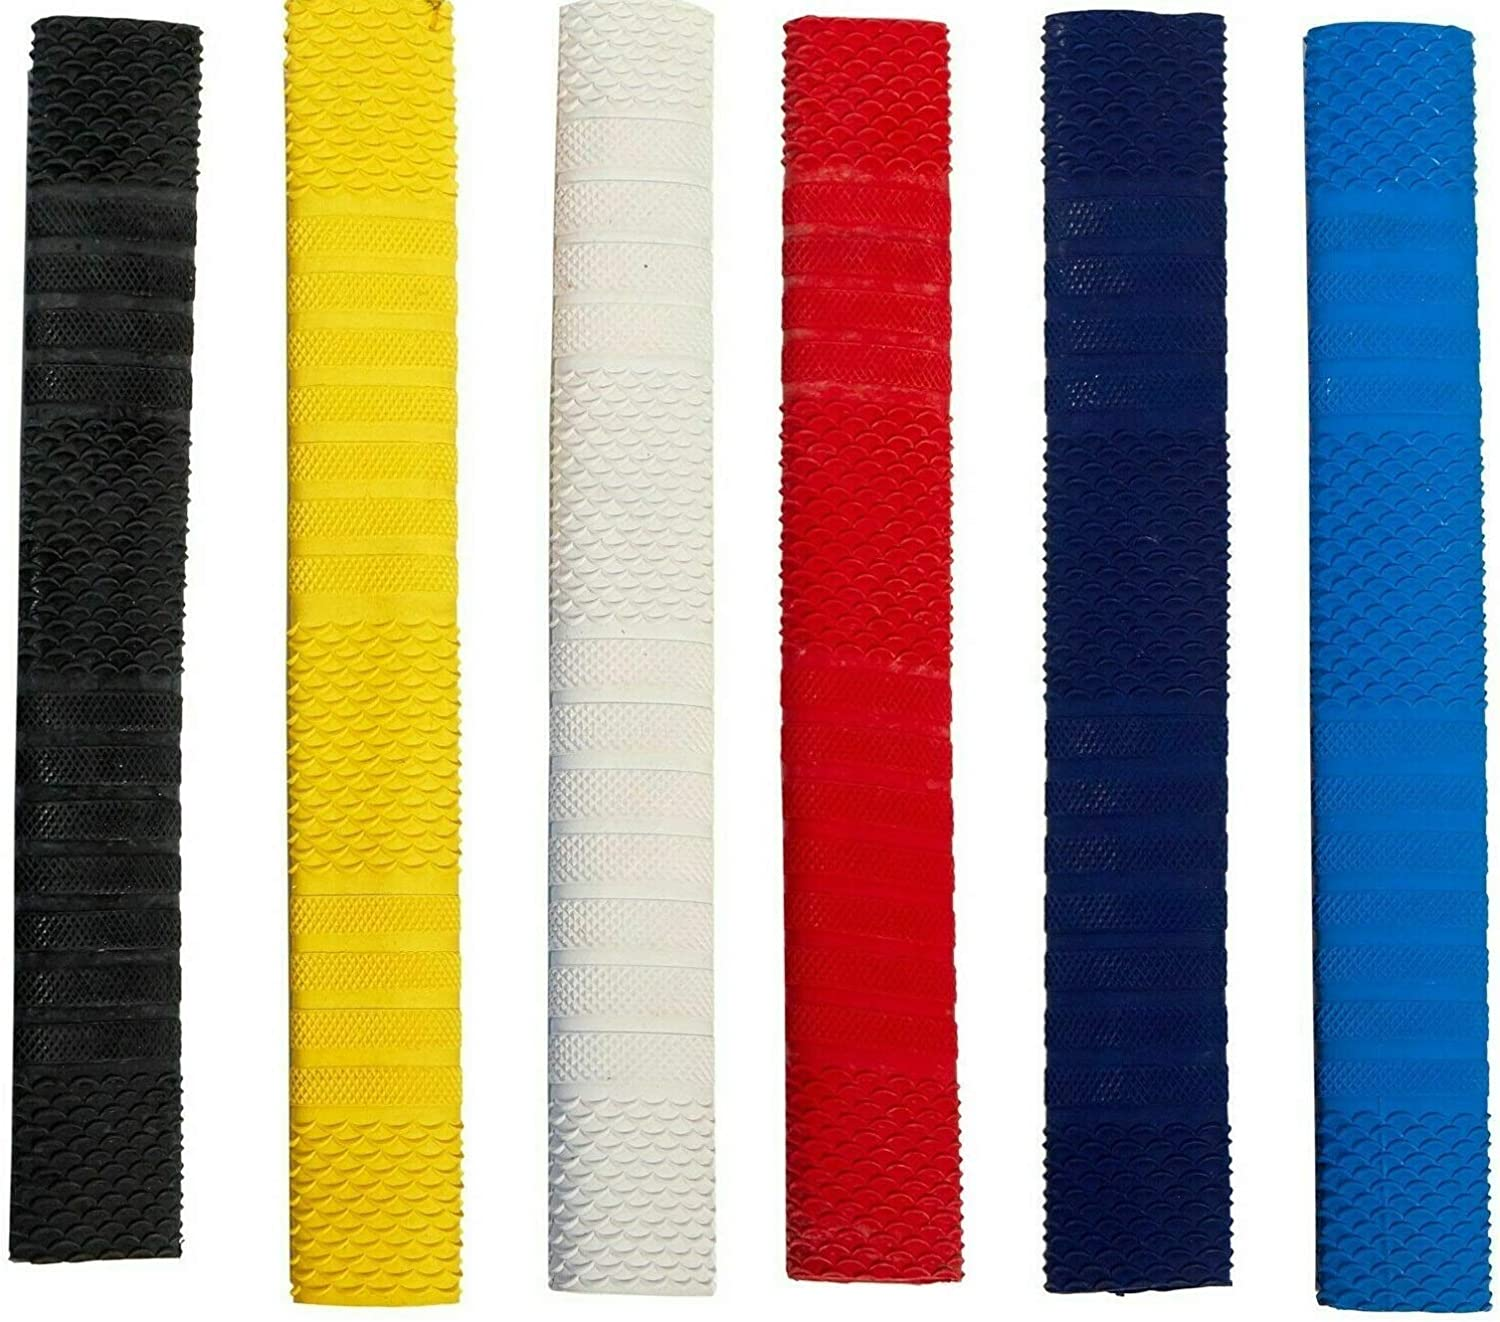 English Cricket Bat Grips To Quality Bat Handle Thick Rubber Grips Anti Slip